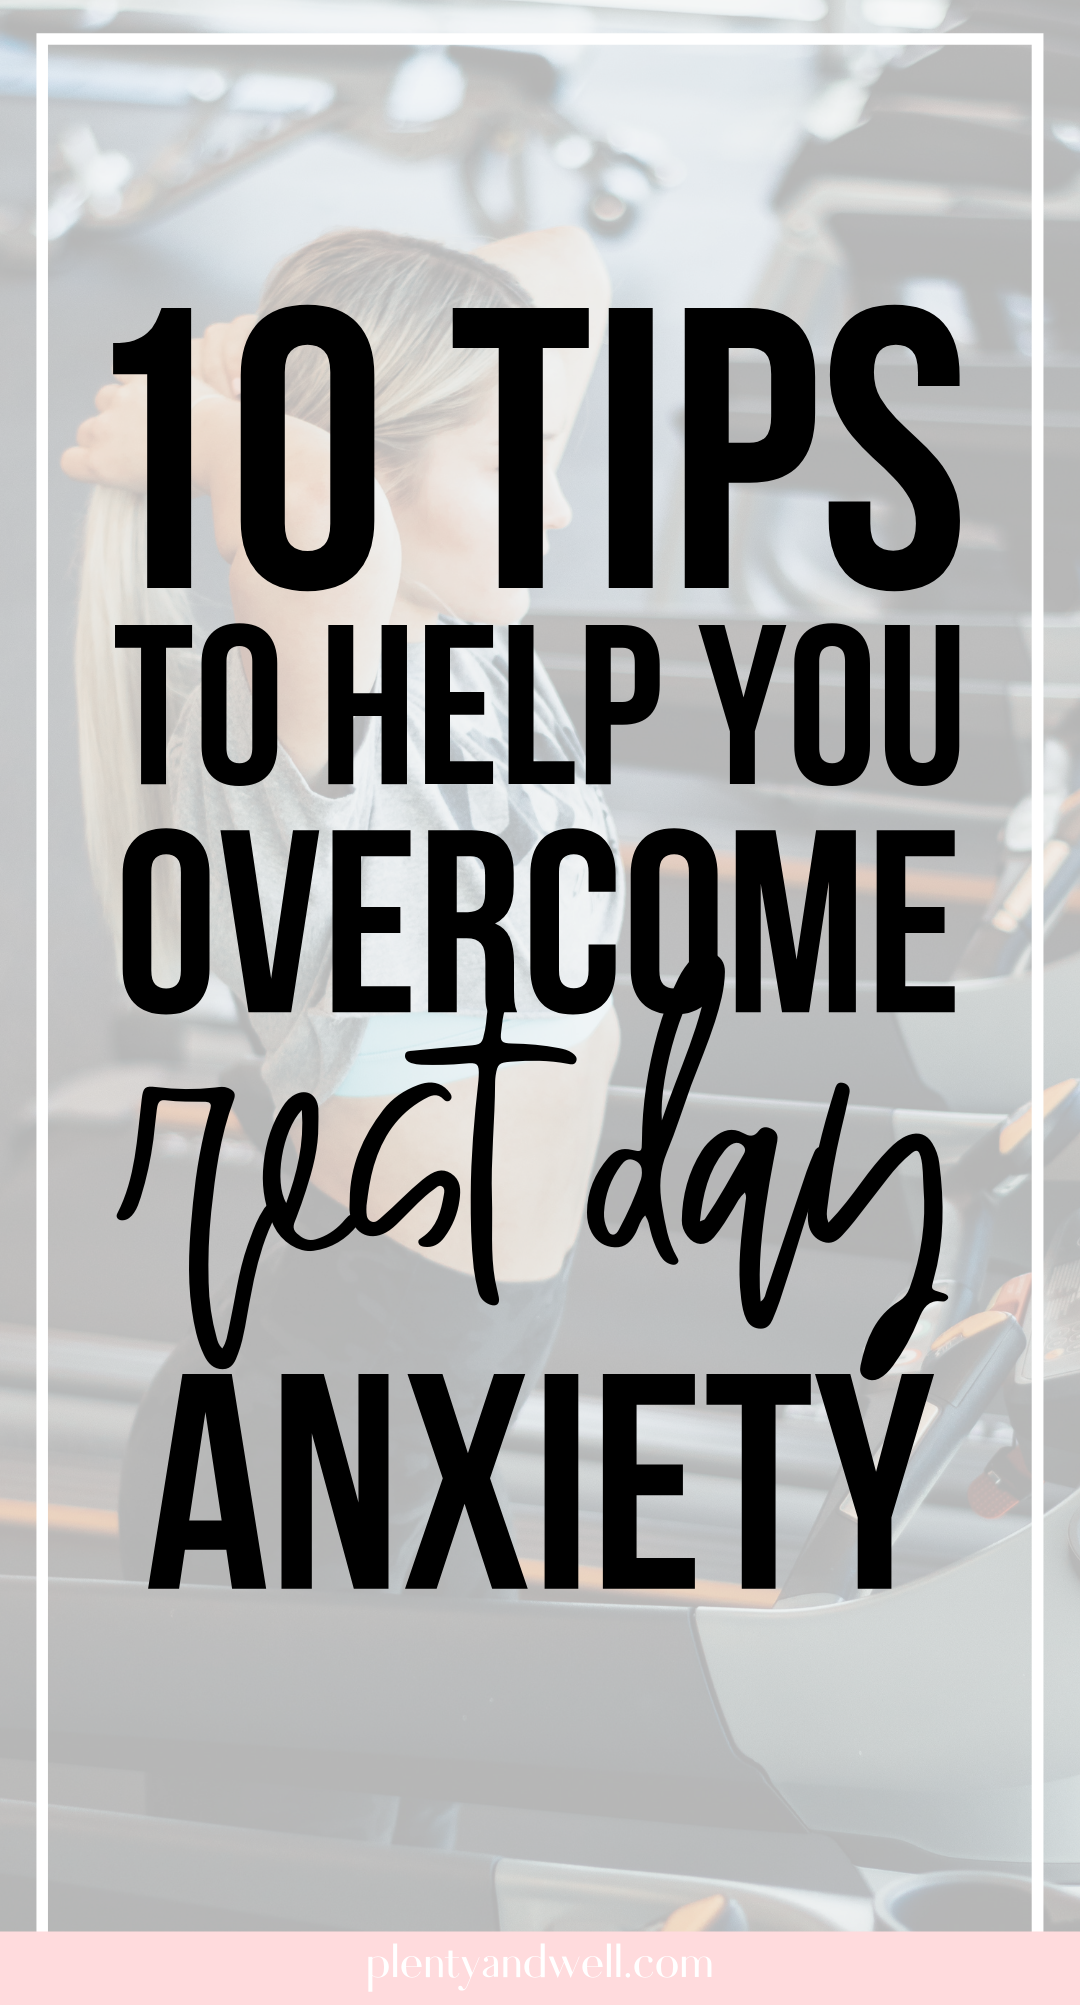 10 tips to help you overcome rest day anxiety